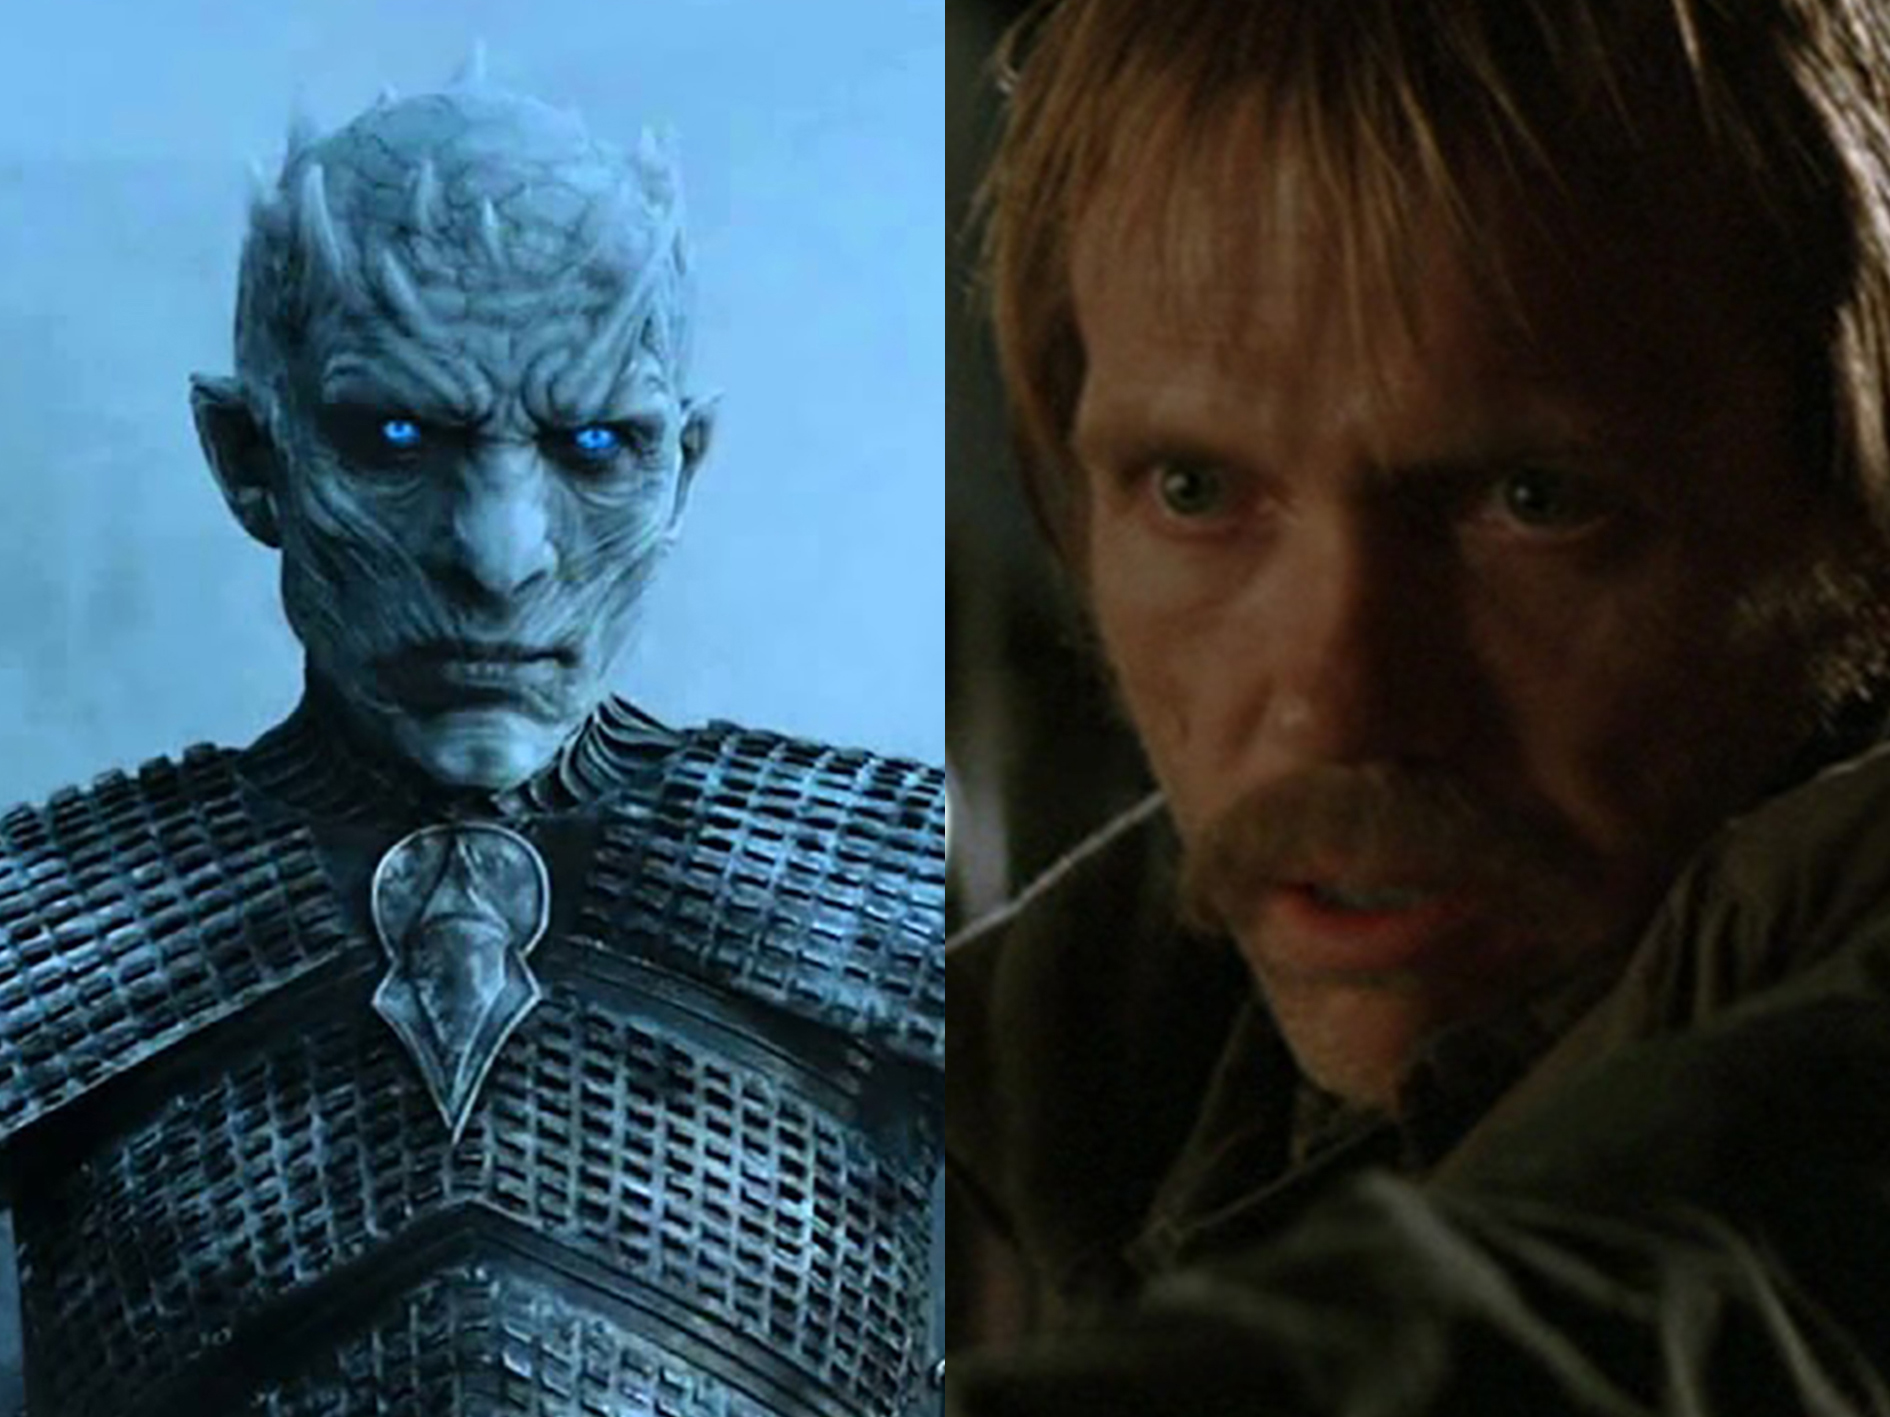 Game of Thrones Night King Joe Chill Richard Brake 33 Things You Didn't Know About The Game of Thrones Cast